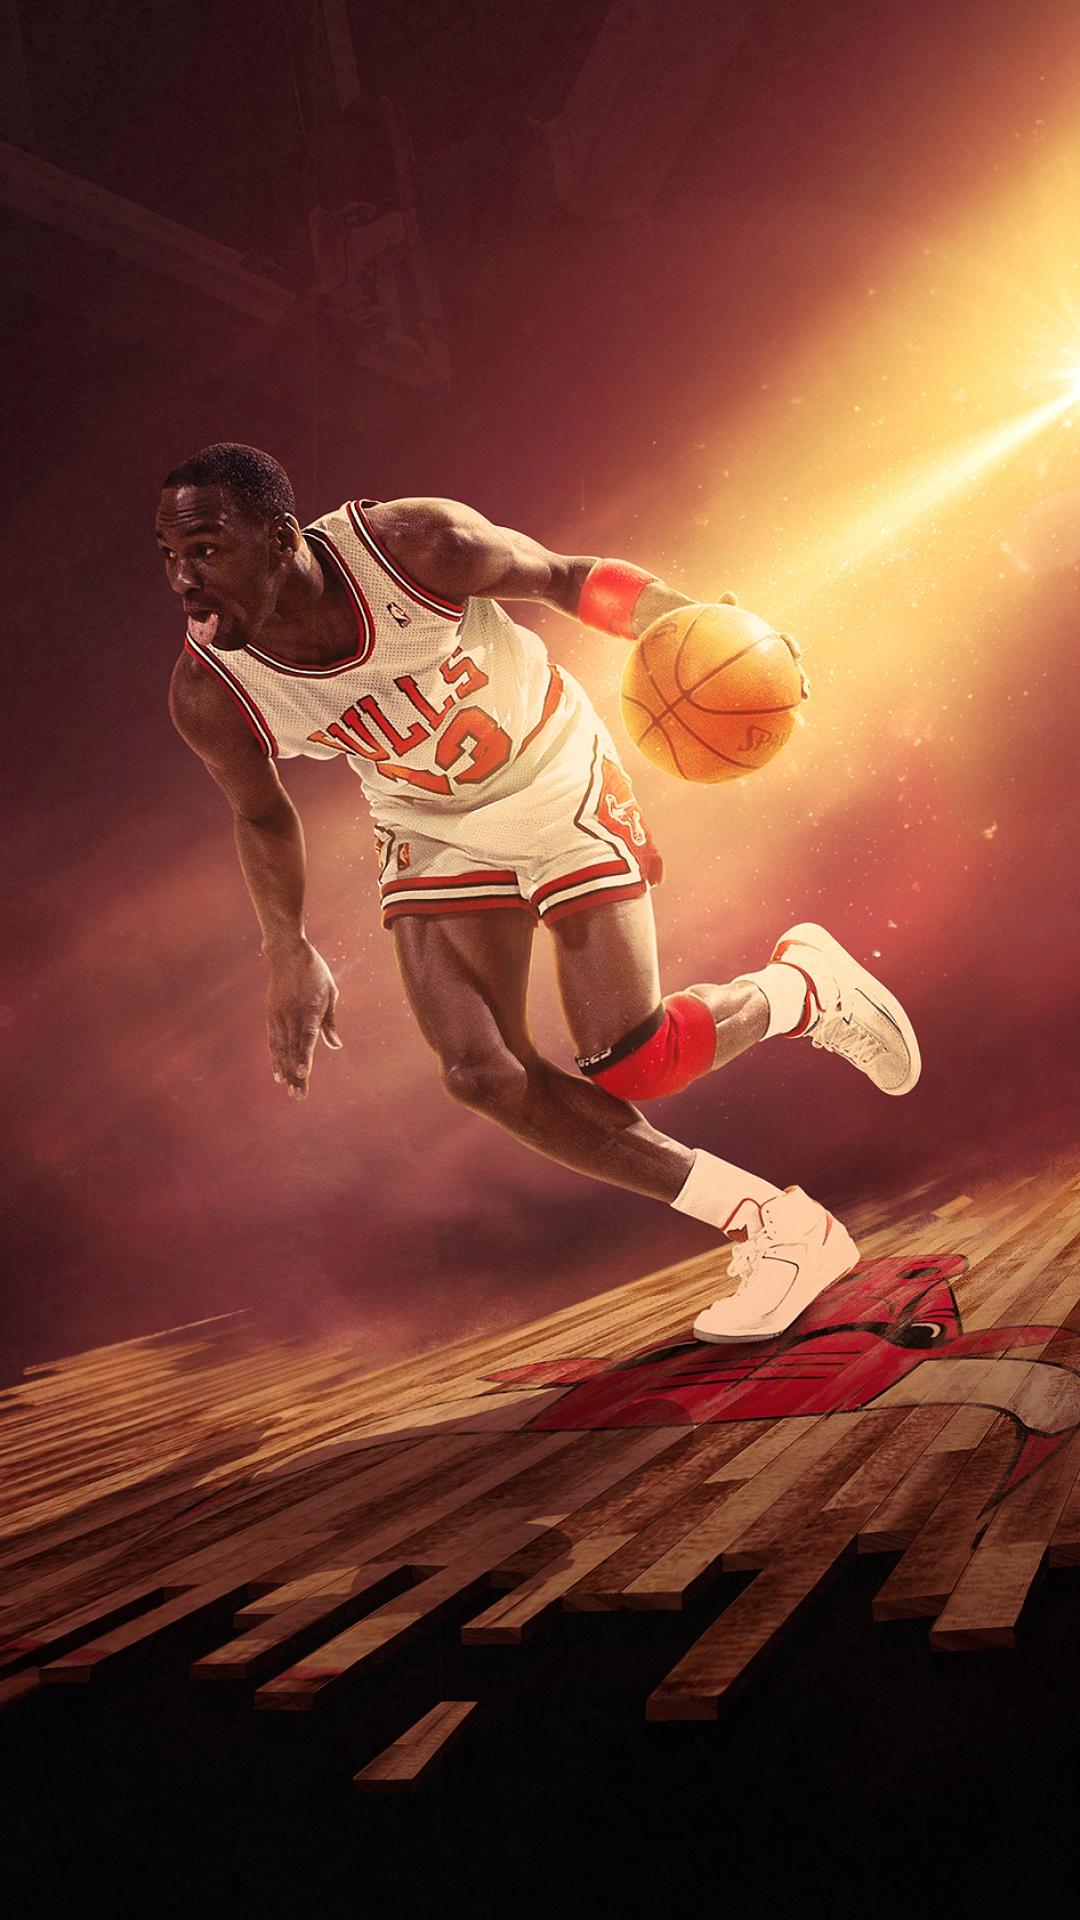 Wallpaper Wiki Michael Jordan Chicago Bulls Legend Basketball Sports